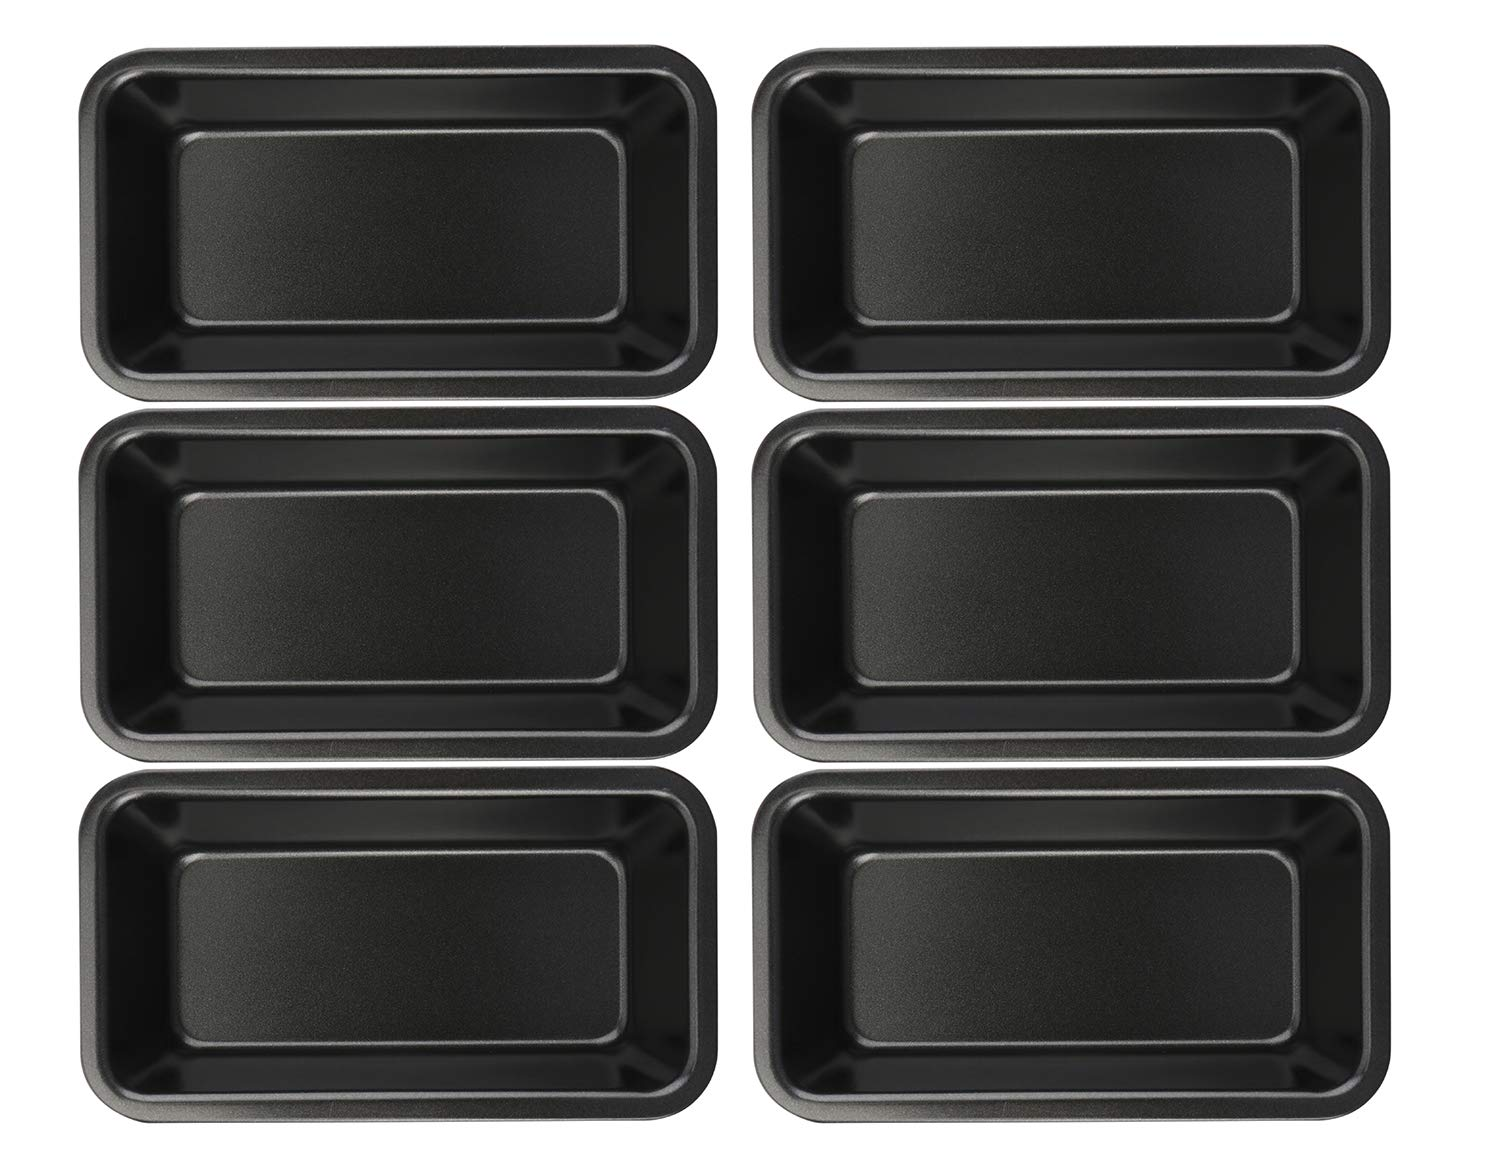 Lawei 6 Piece Non-Stick Mini Loaf Pan - 3.5 x 6 Inch Carbon Steel Bread and Toast Mold